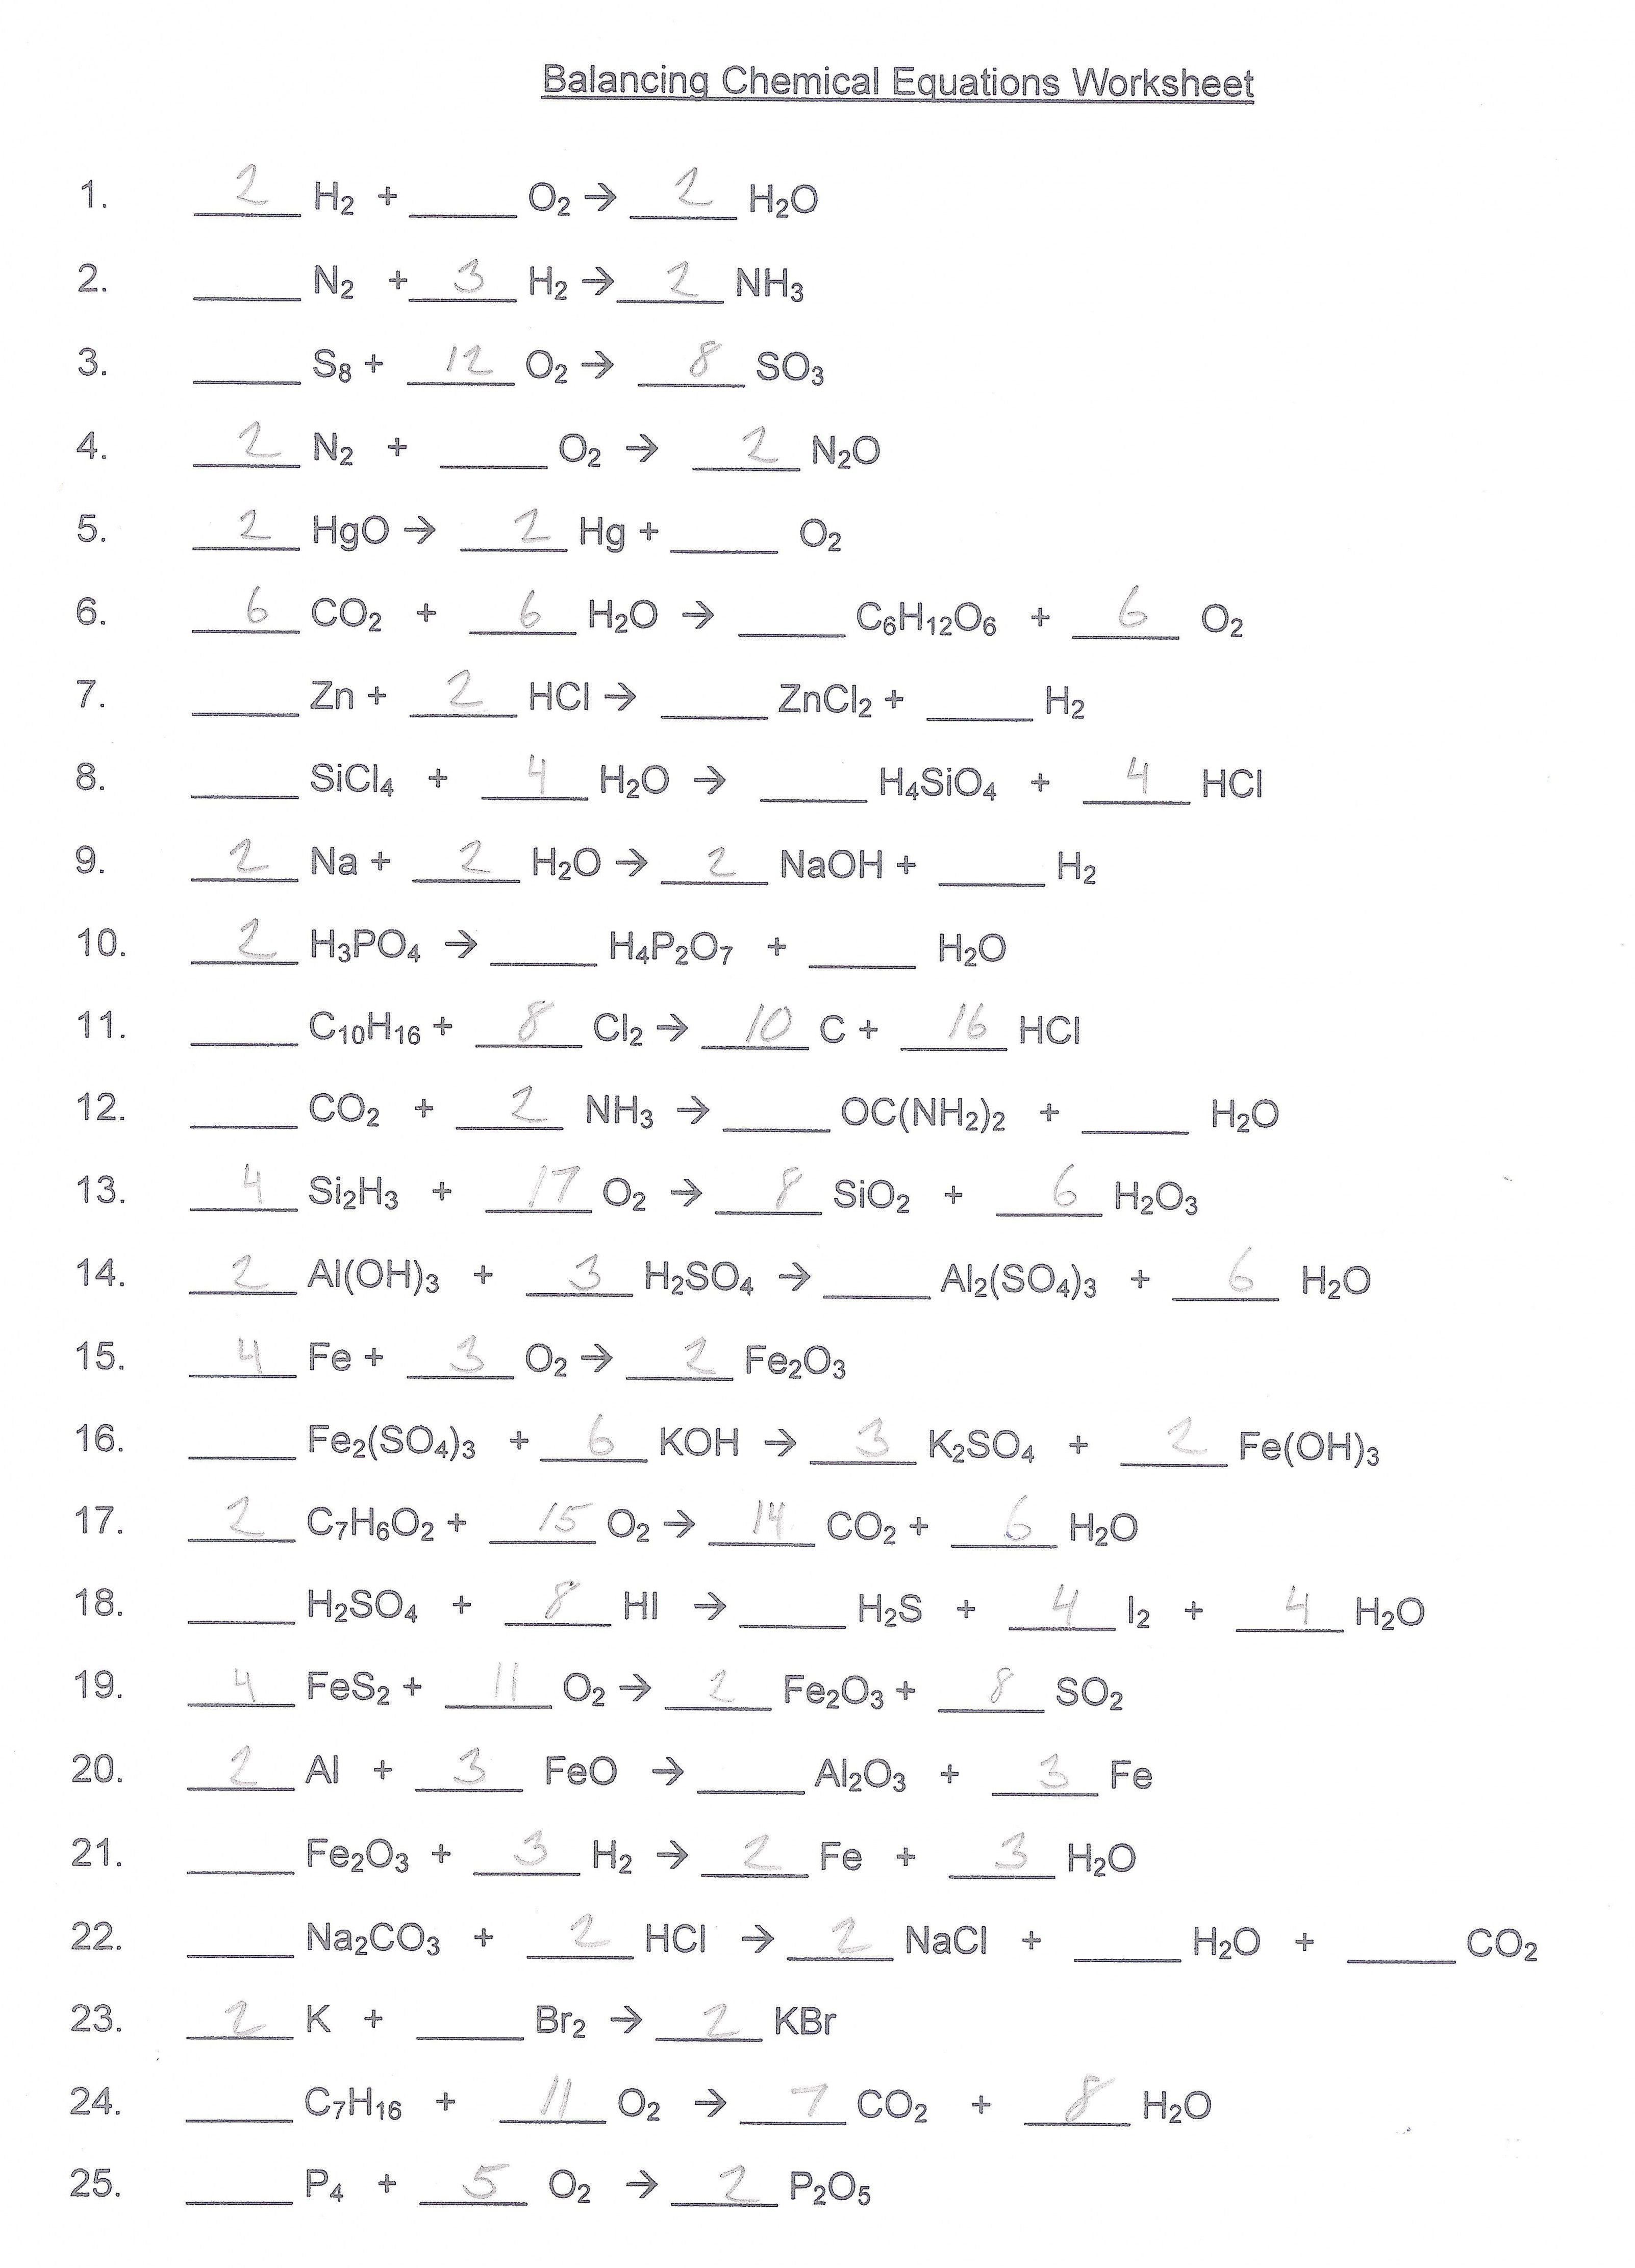 Balancing Chemical Equations Worksheet Answers 1 25  Lobo Black With Regard To Balancing Chemical Equations Worksheet Answers 1 25